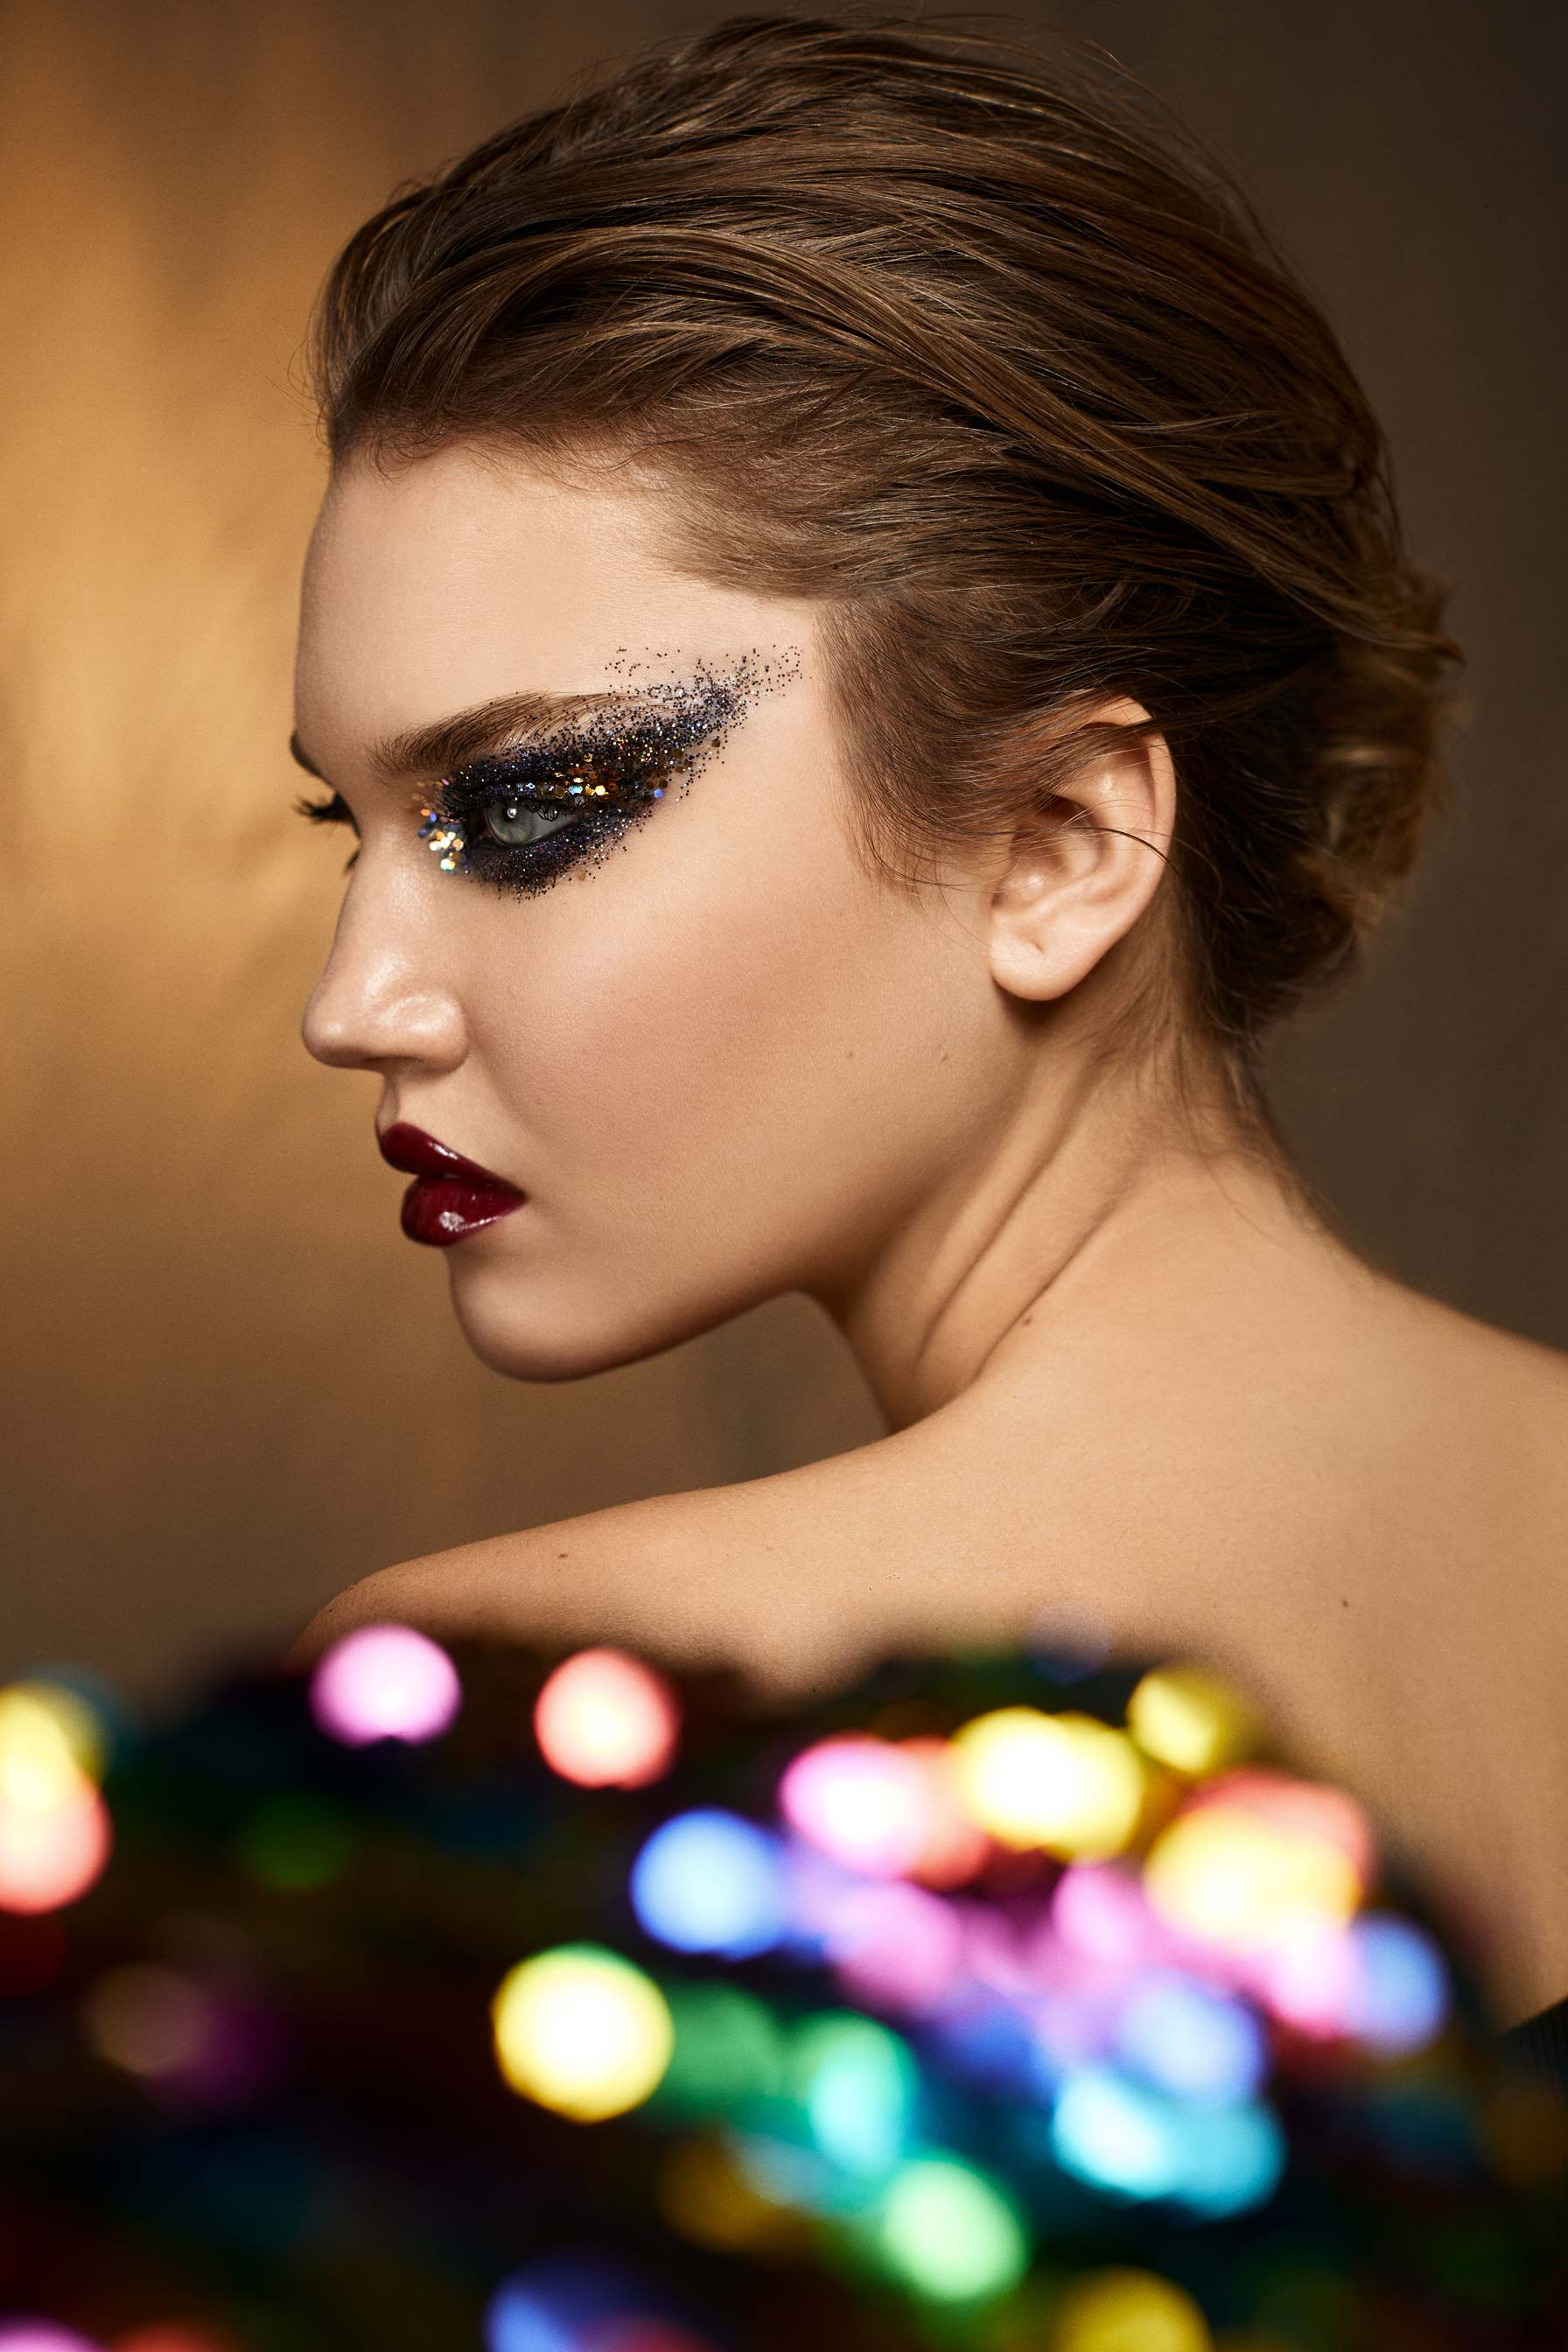 Dariane Sanche professional commercial photographer product photographer and cosmetic image and beauty makeup